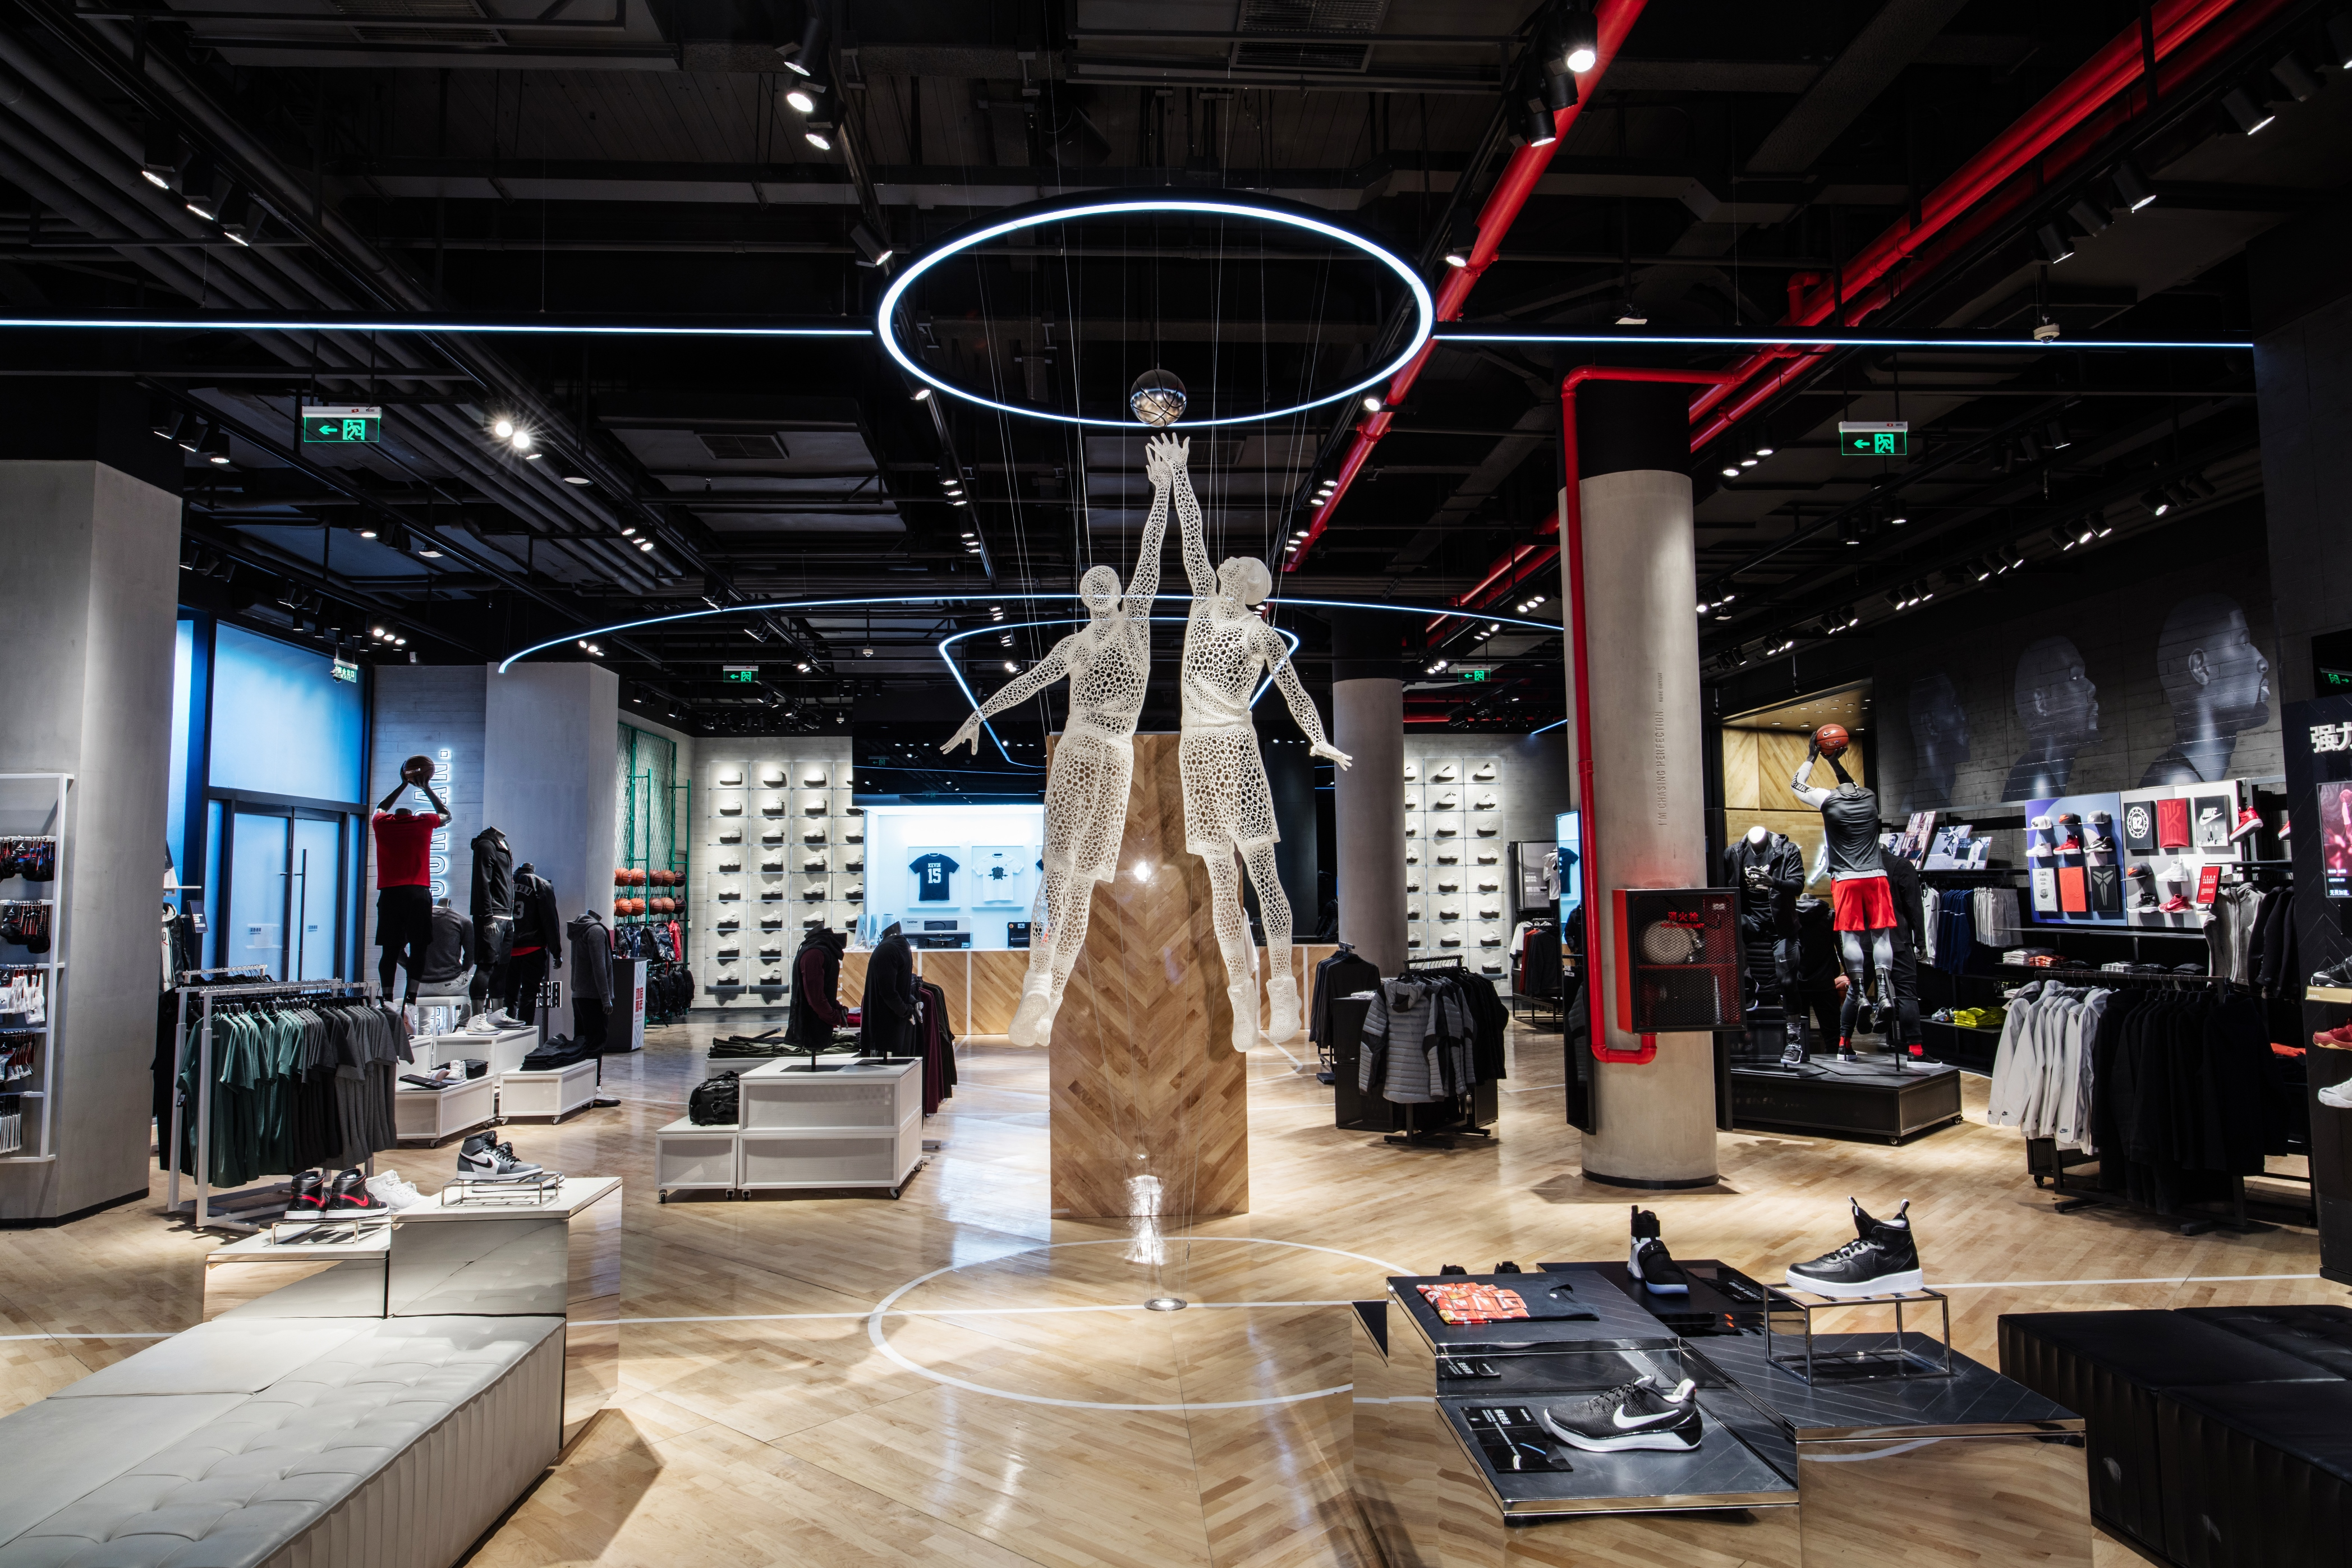 LO HI First Look Inside The Nike Jordan Basketball Experience Store